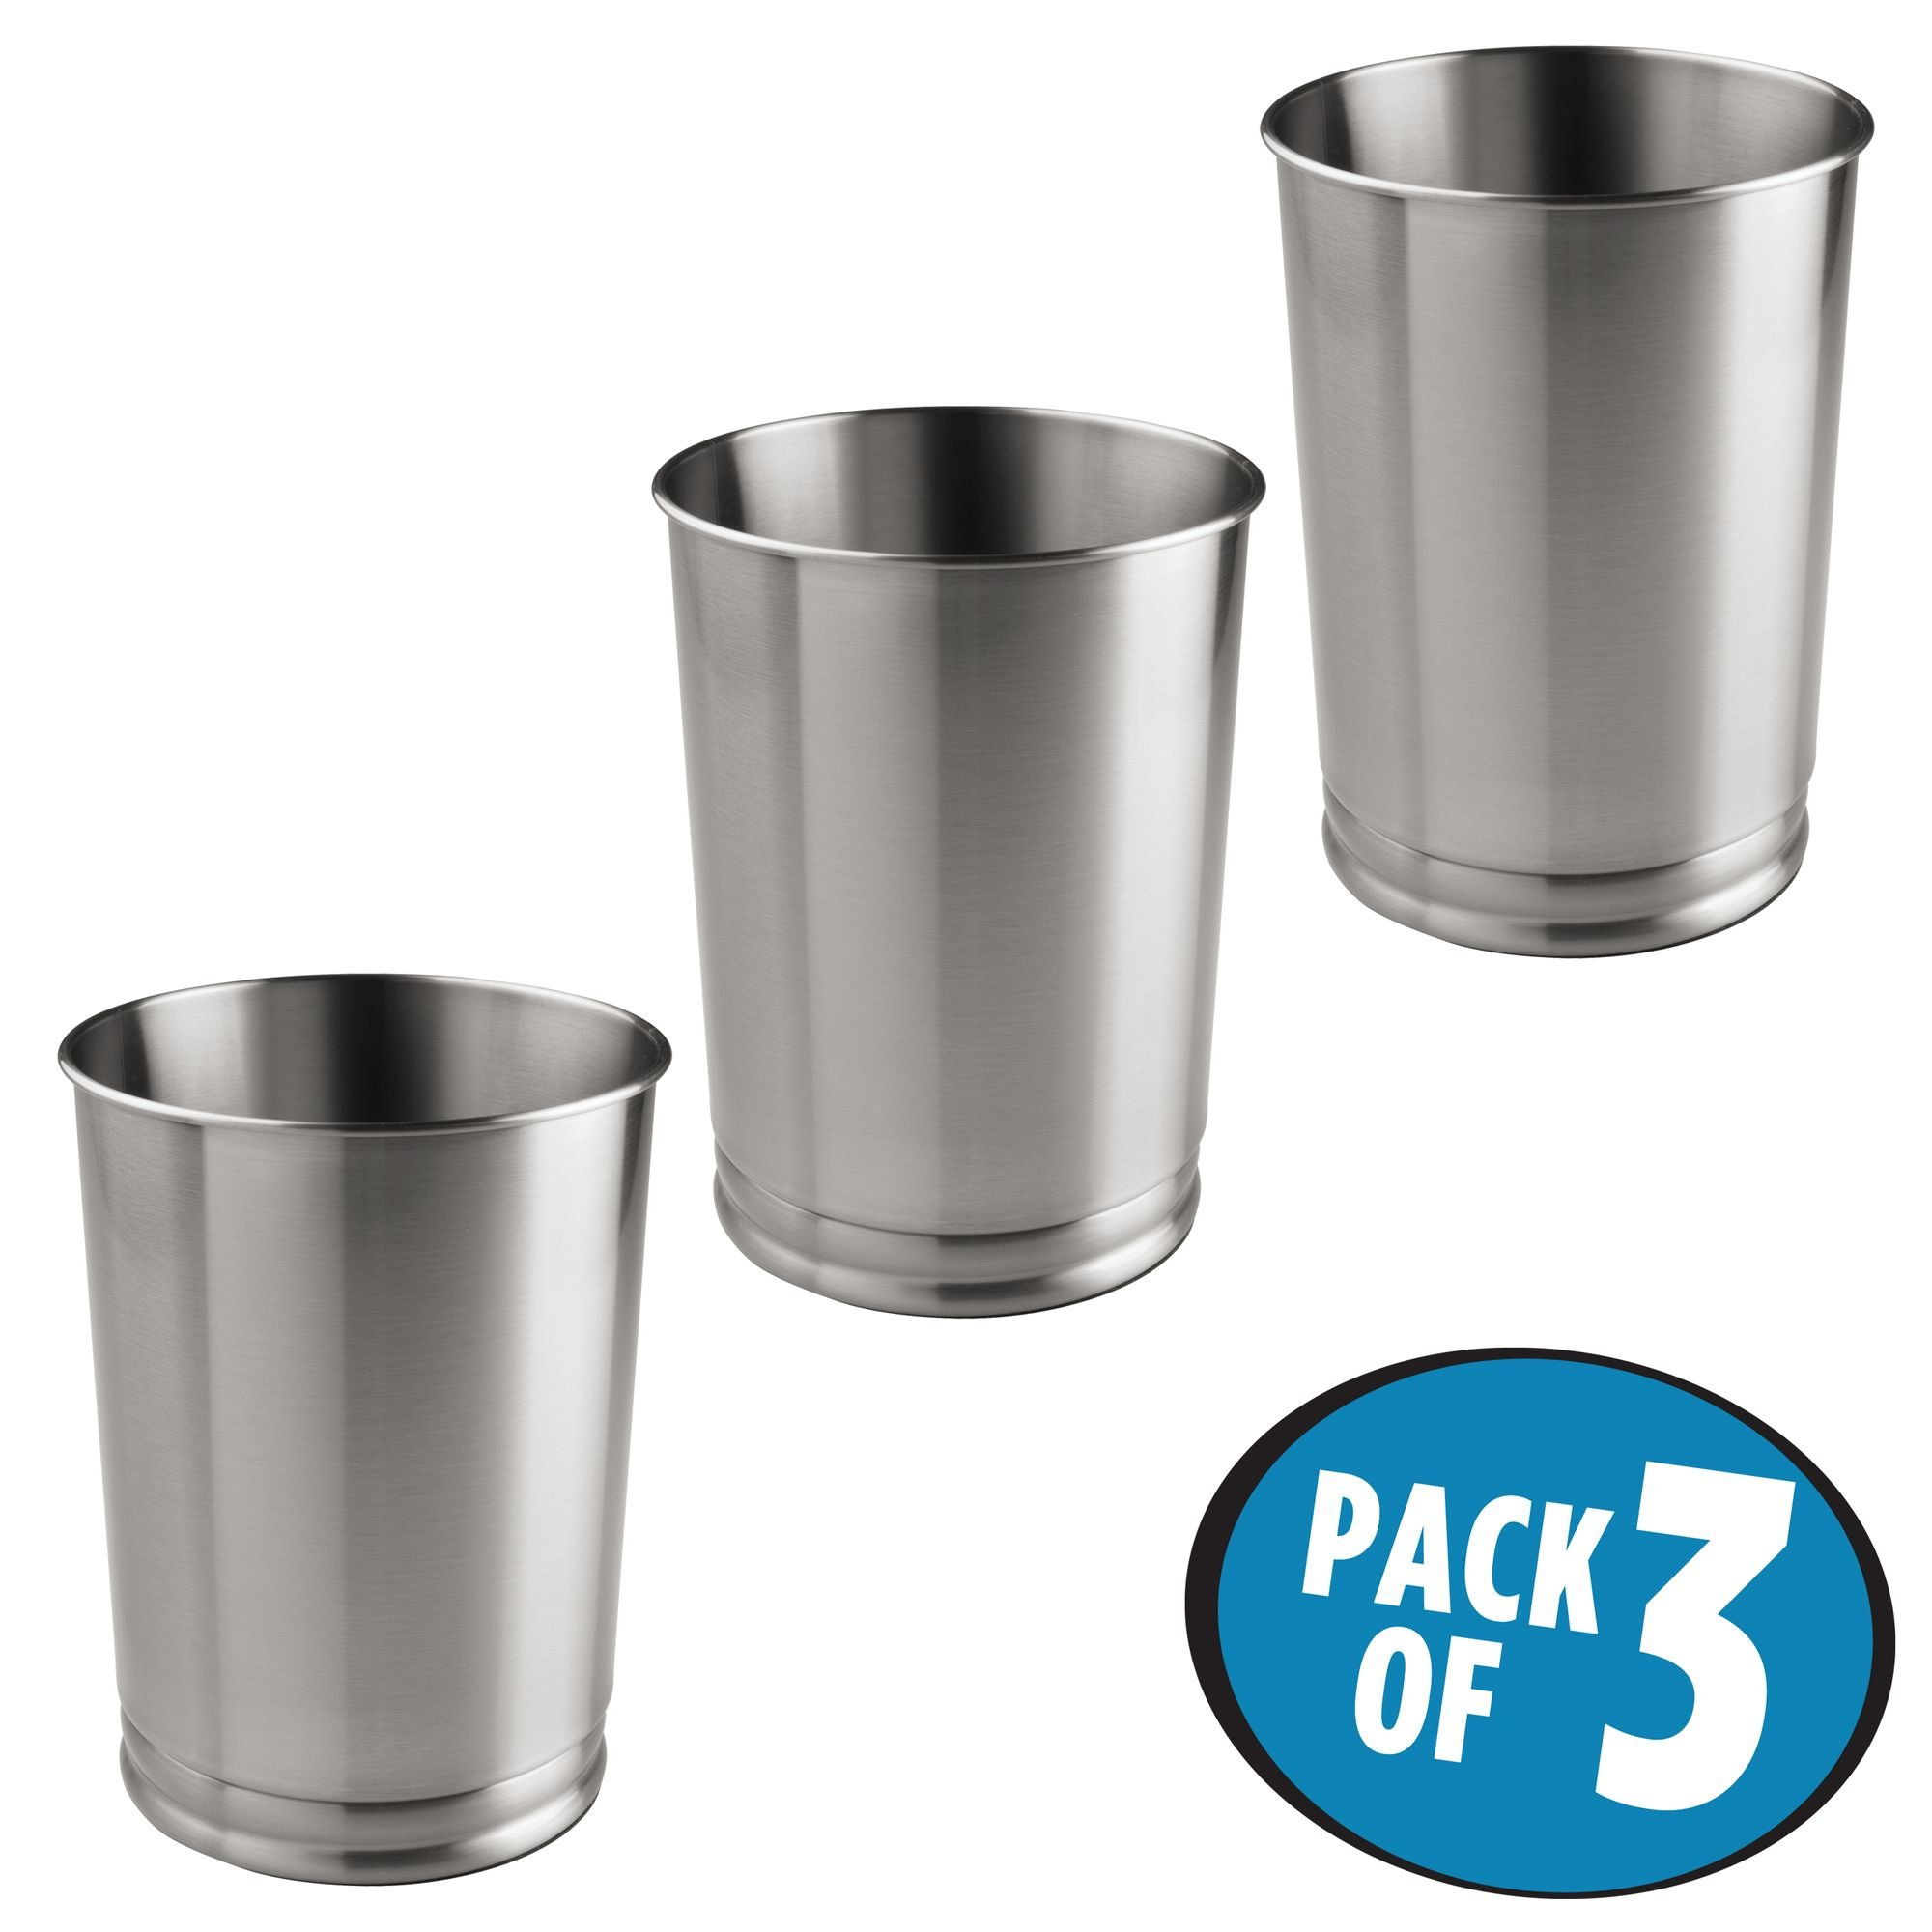 mDesign Round Metal Tall Trash Can Wastebasket, Garbage Container Bin for Bathrooms, Powder Rooms, Kitchens, Home Offices – Pack of 3 - Durable Steel Construction with a Brushed Finish